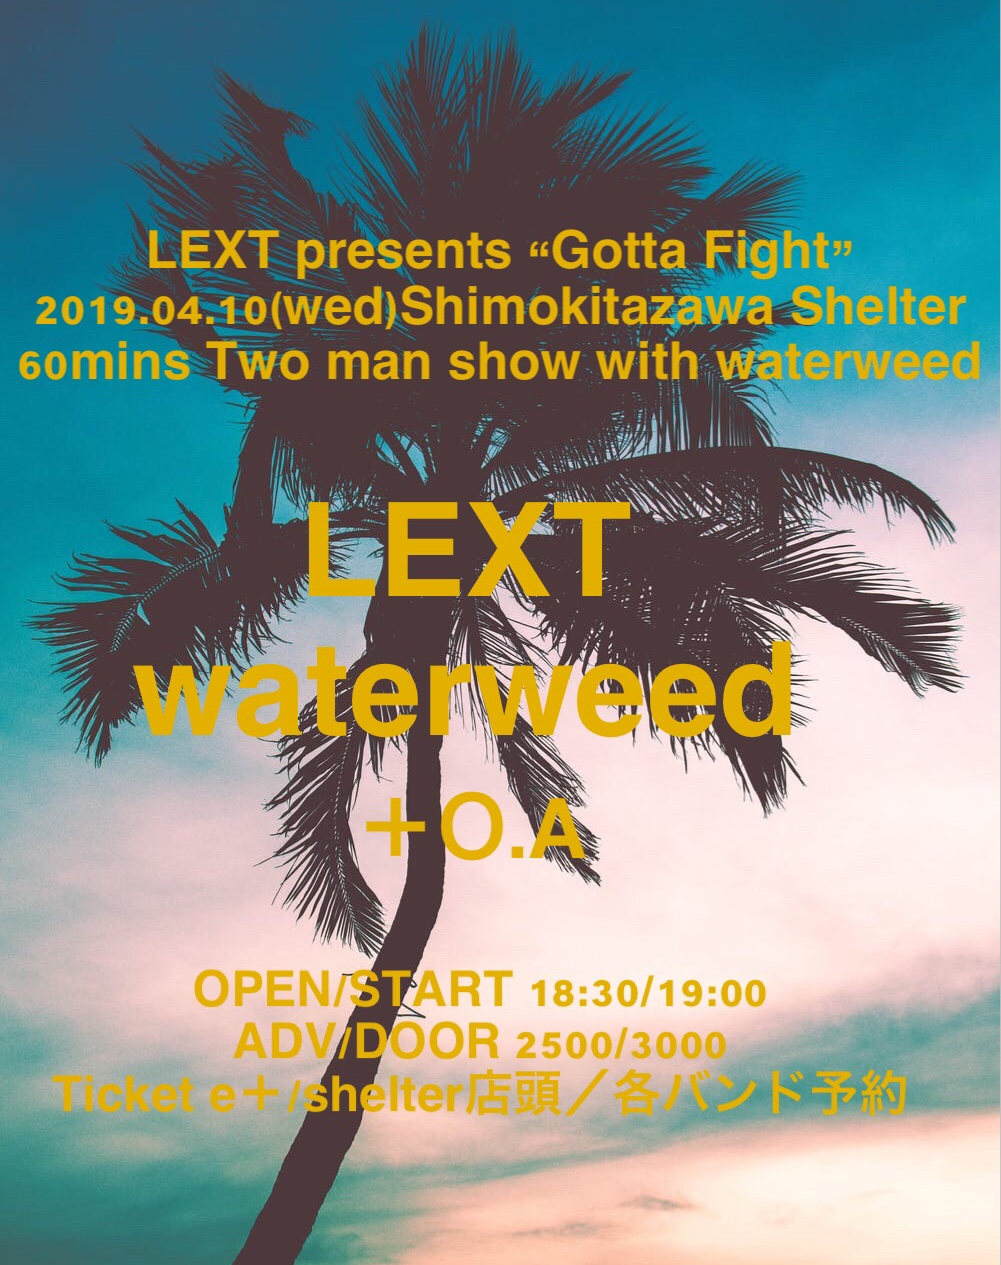 lext_waterweed_shelter